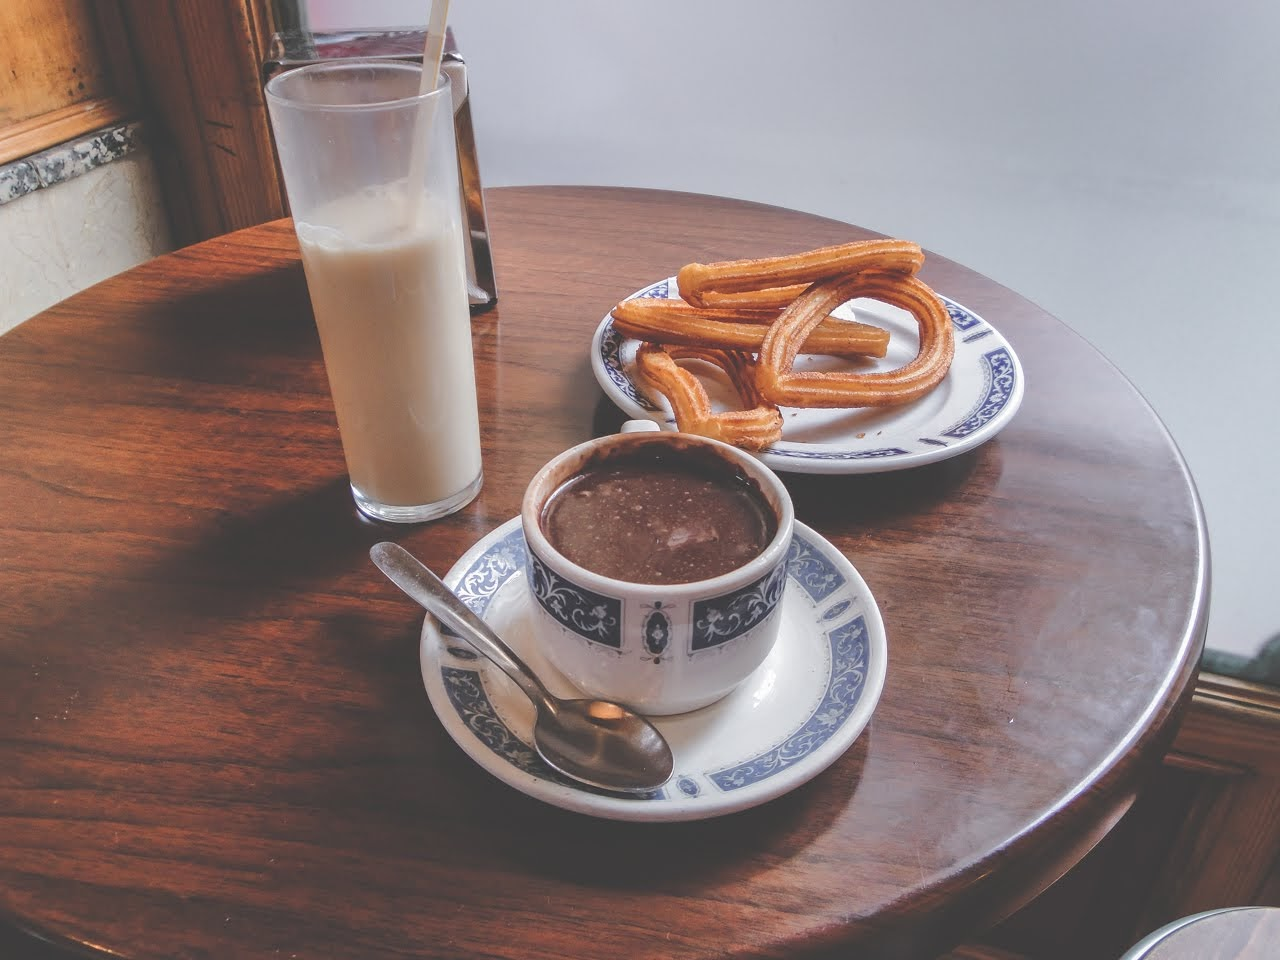 Plat of churros con chocolate and a drink of Horchata on the table ready to eat